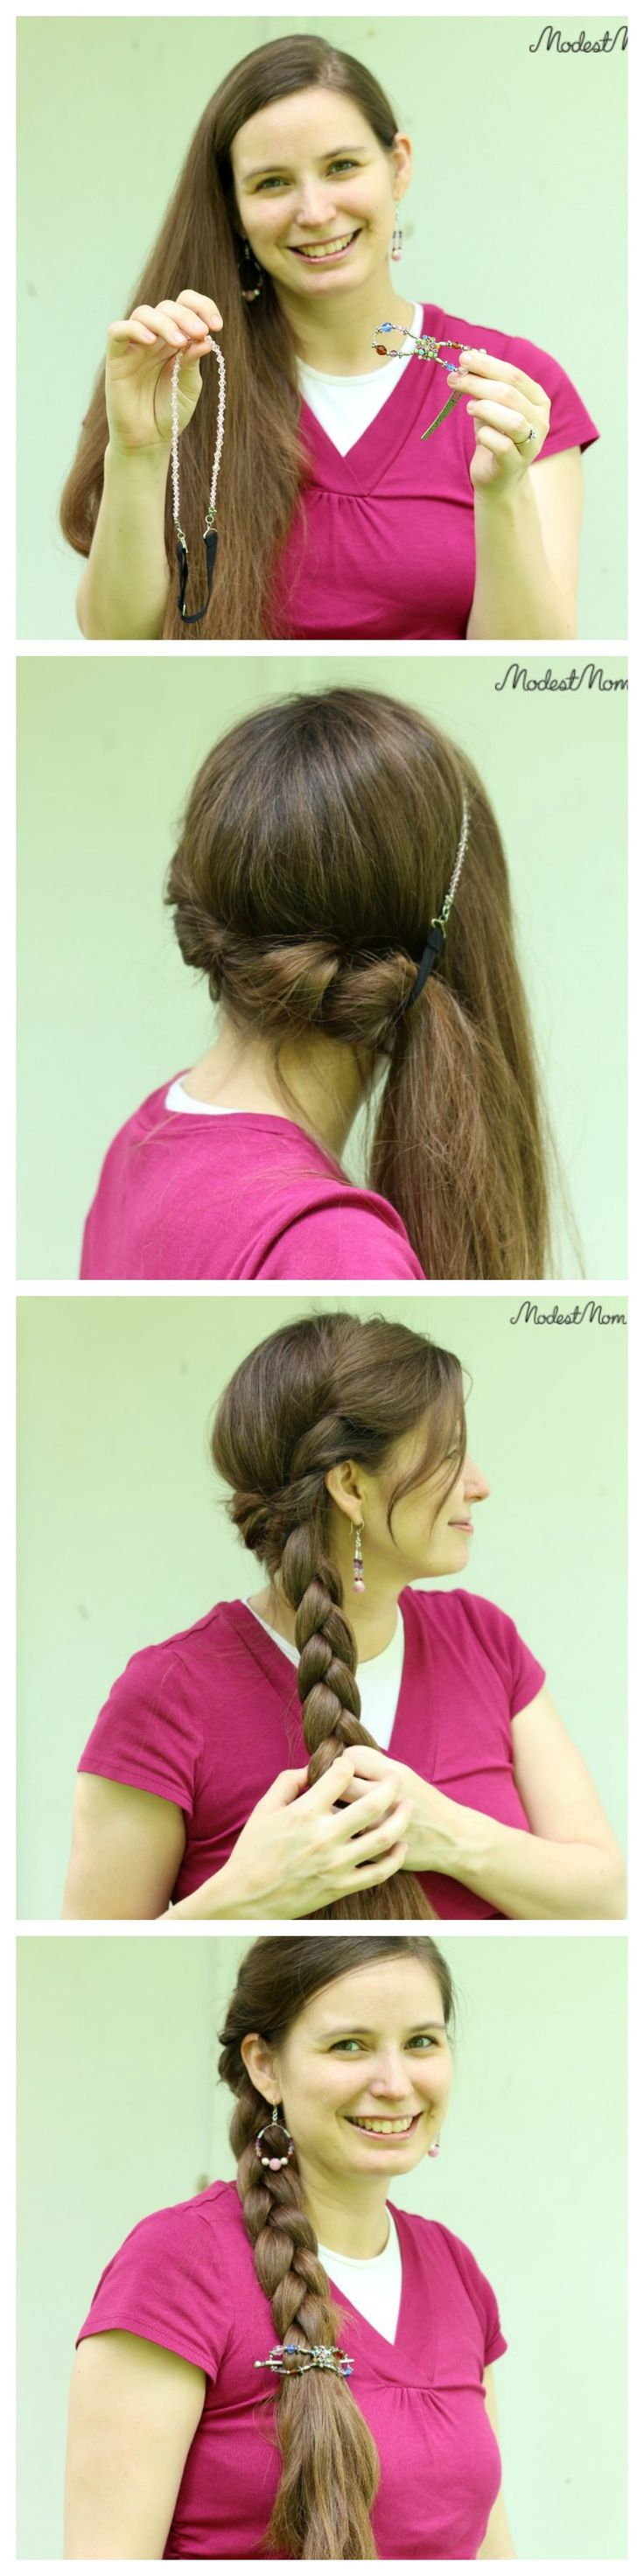 best hair images on pinterest hair dos braids and braided updo